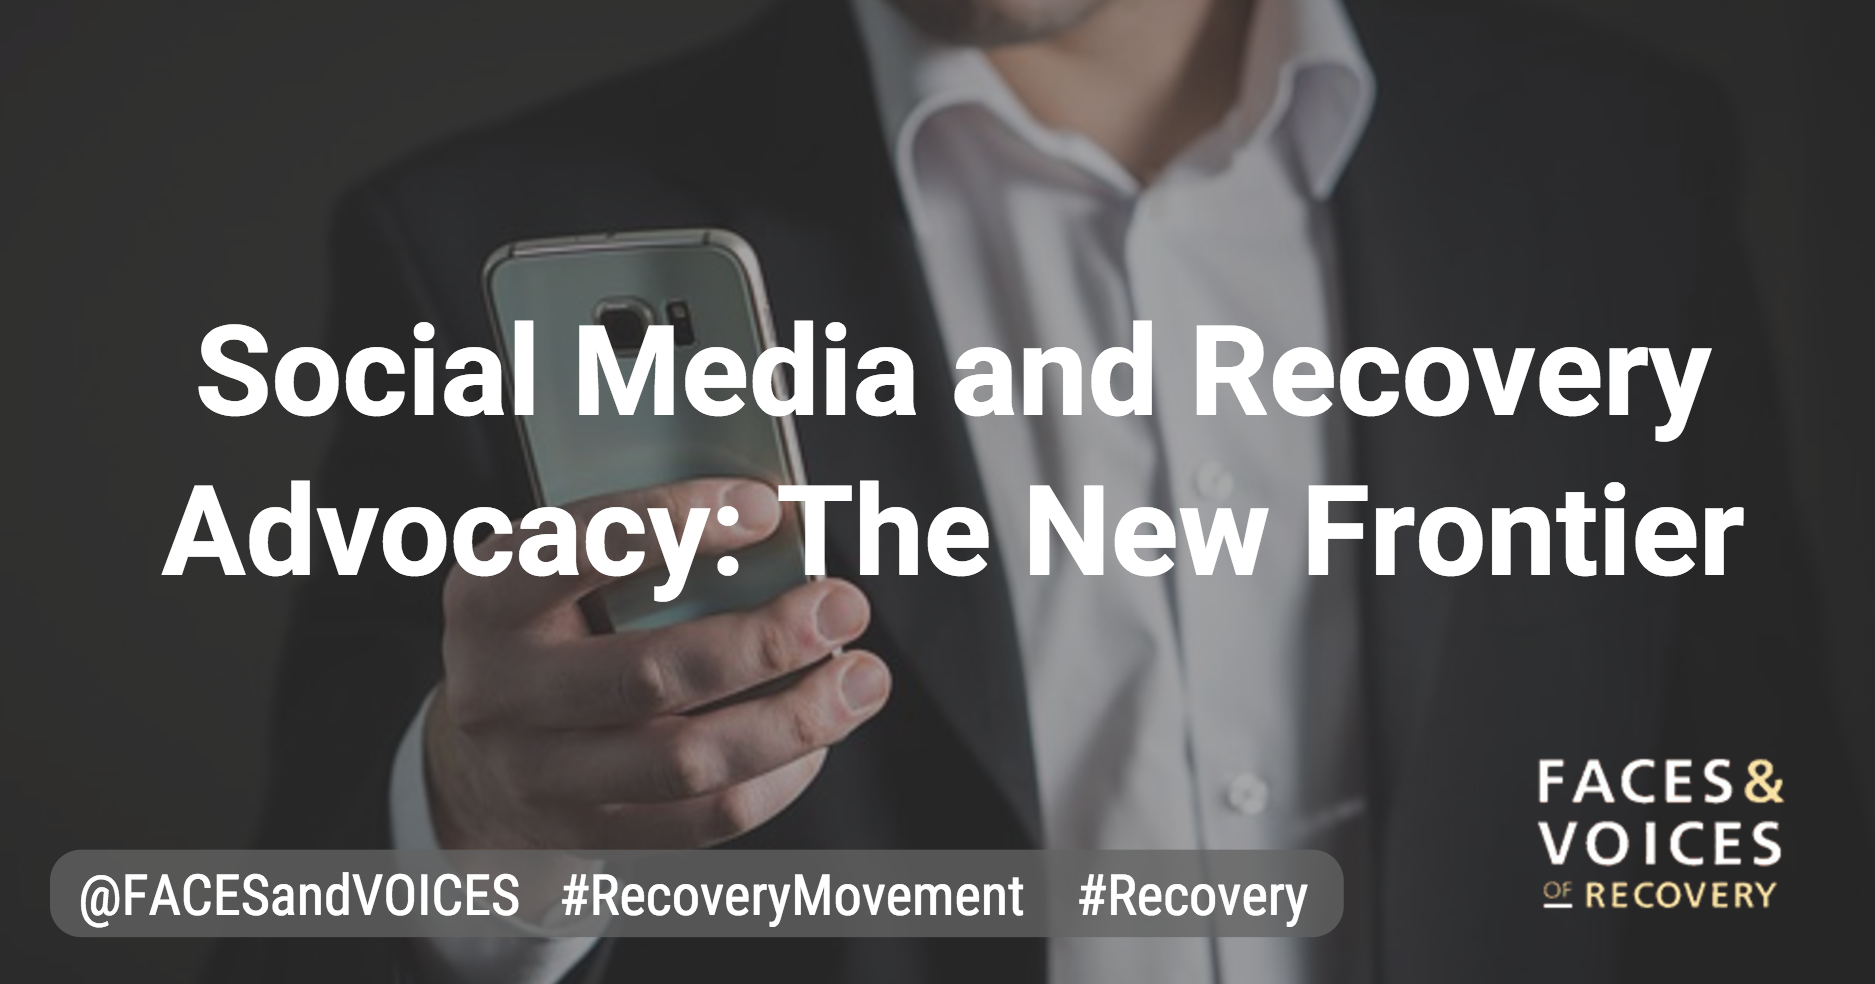 Social Media and Recovery Advocacy: The New Frontier